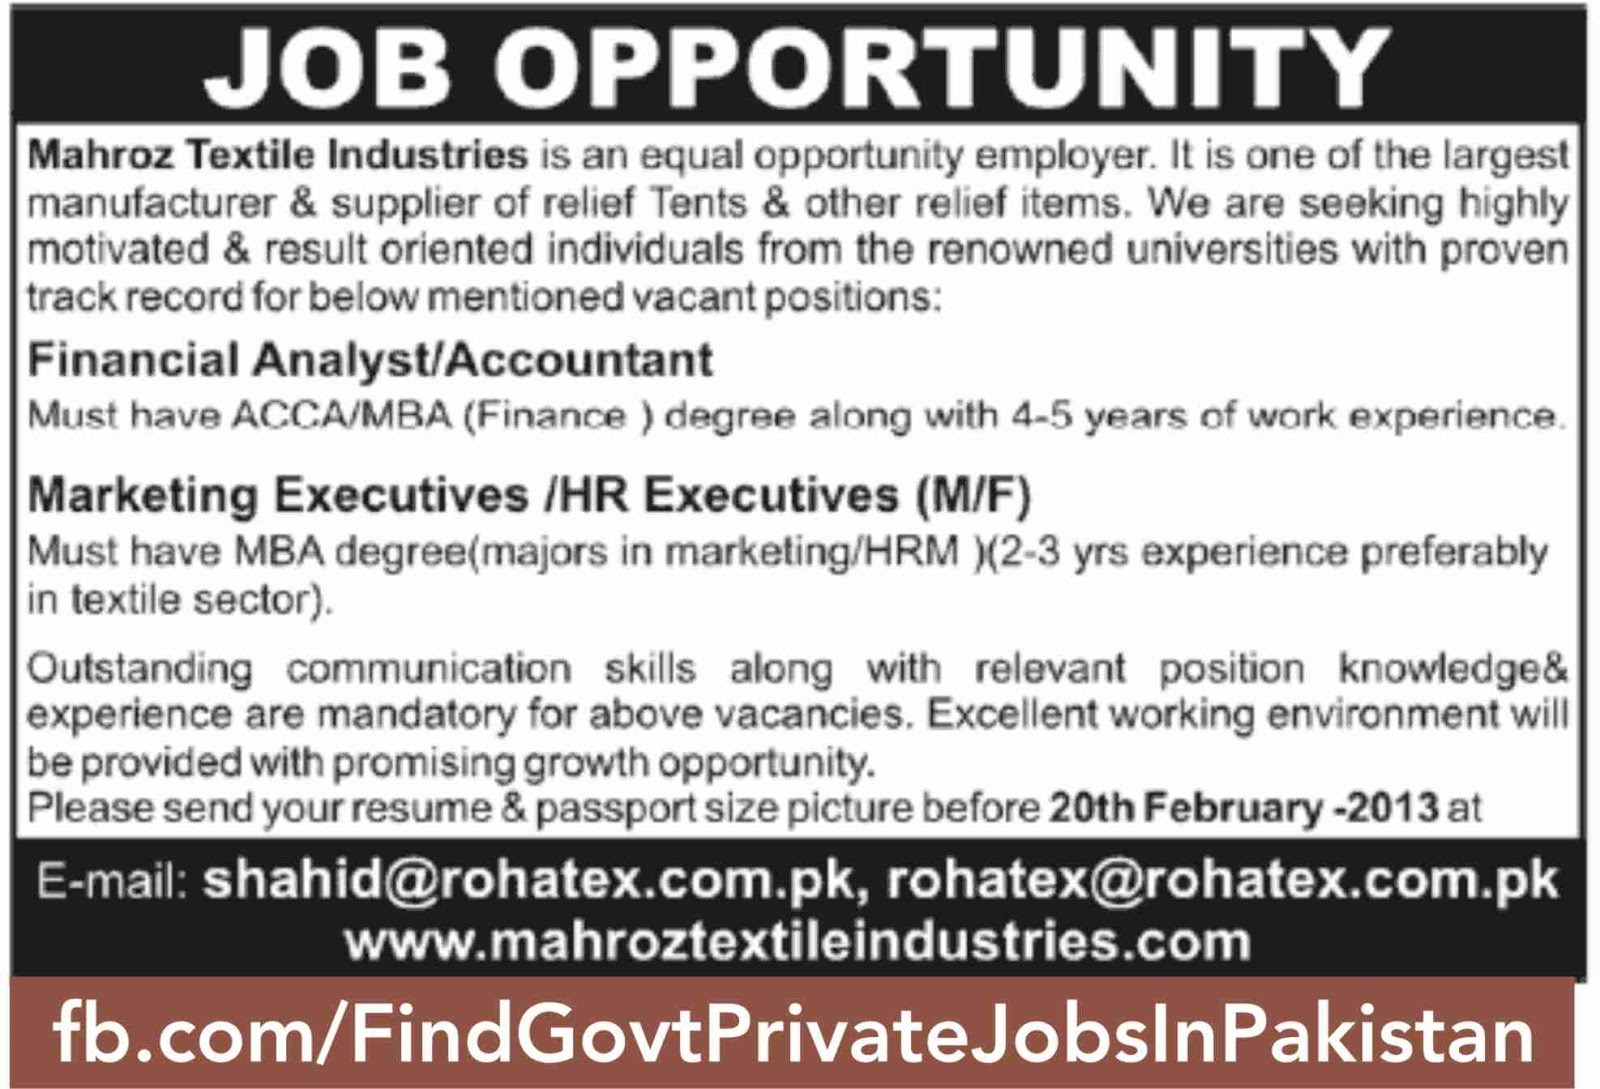 job opportunity in jang sunday ads